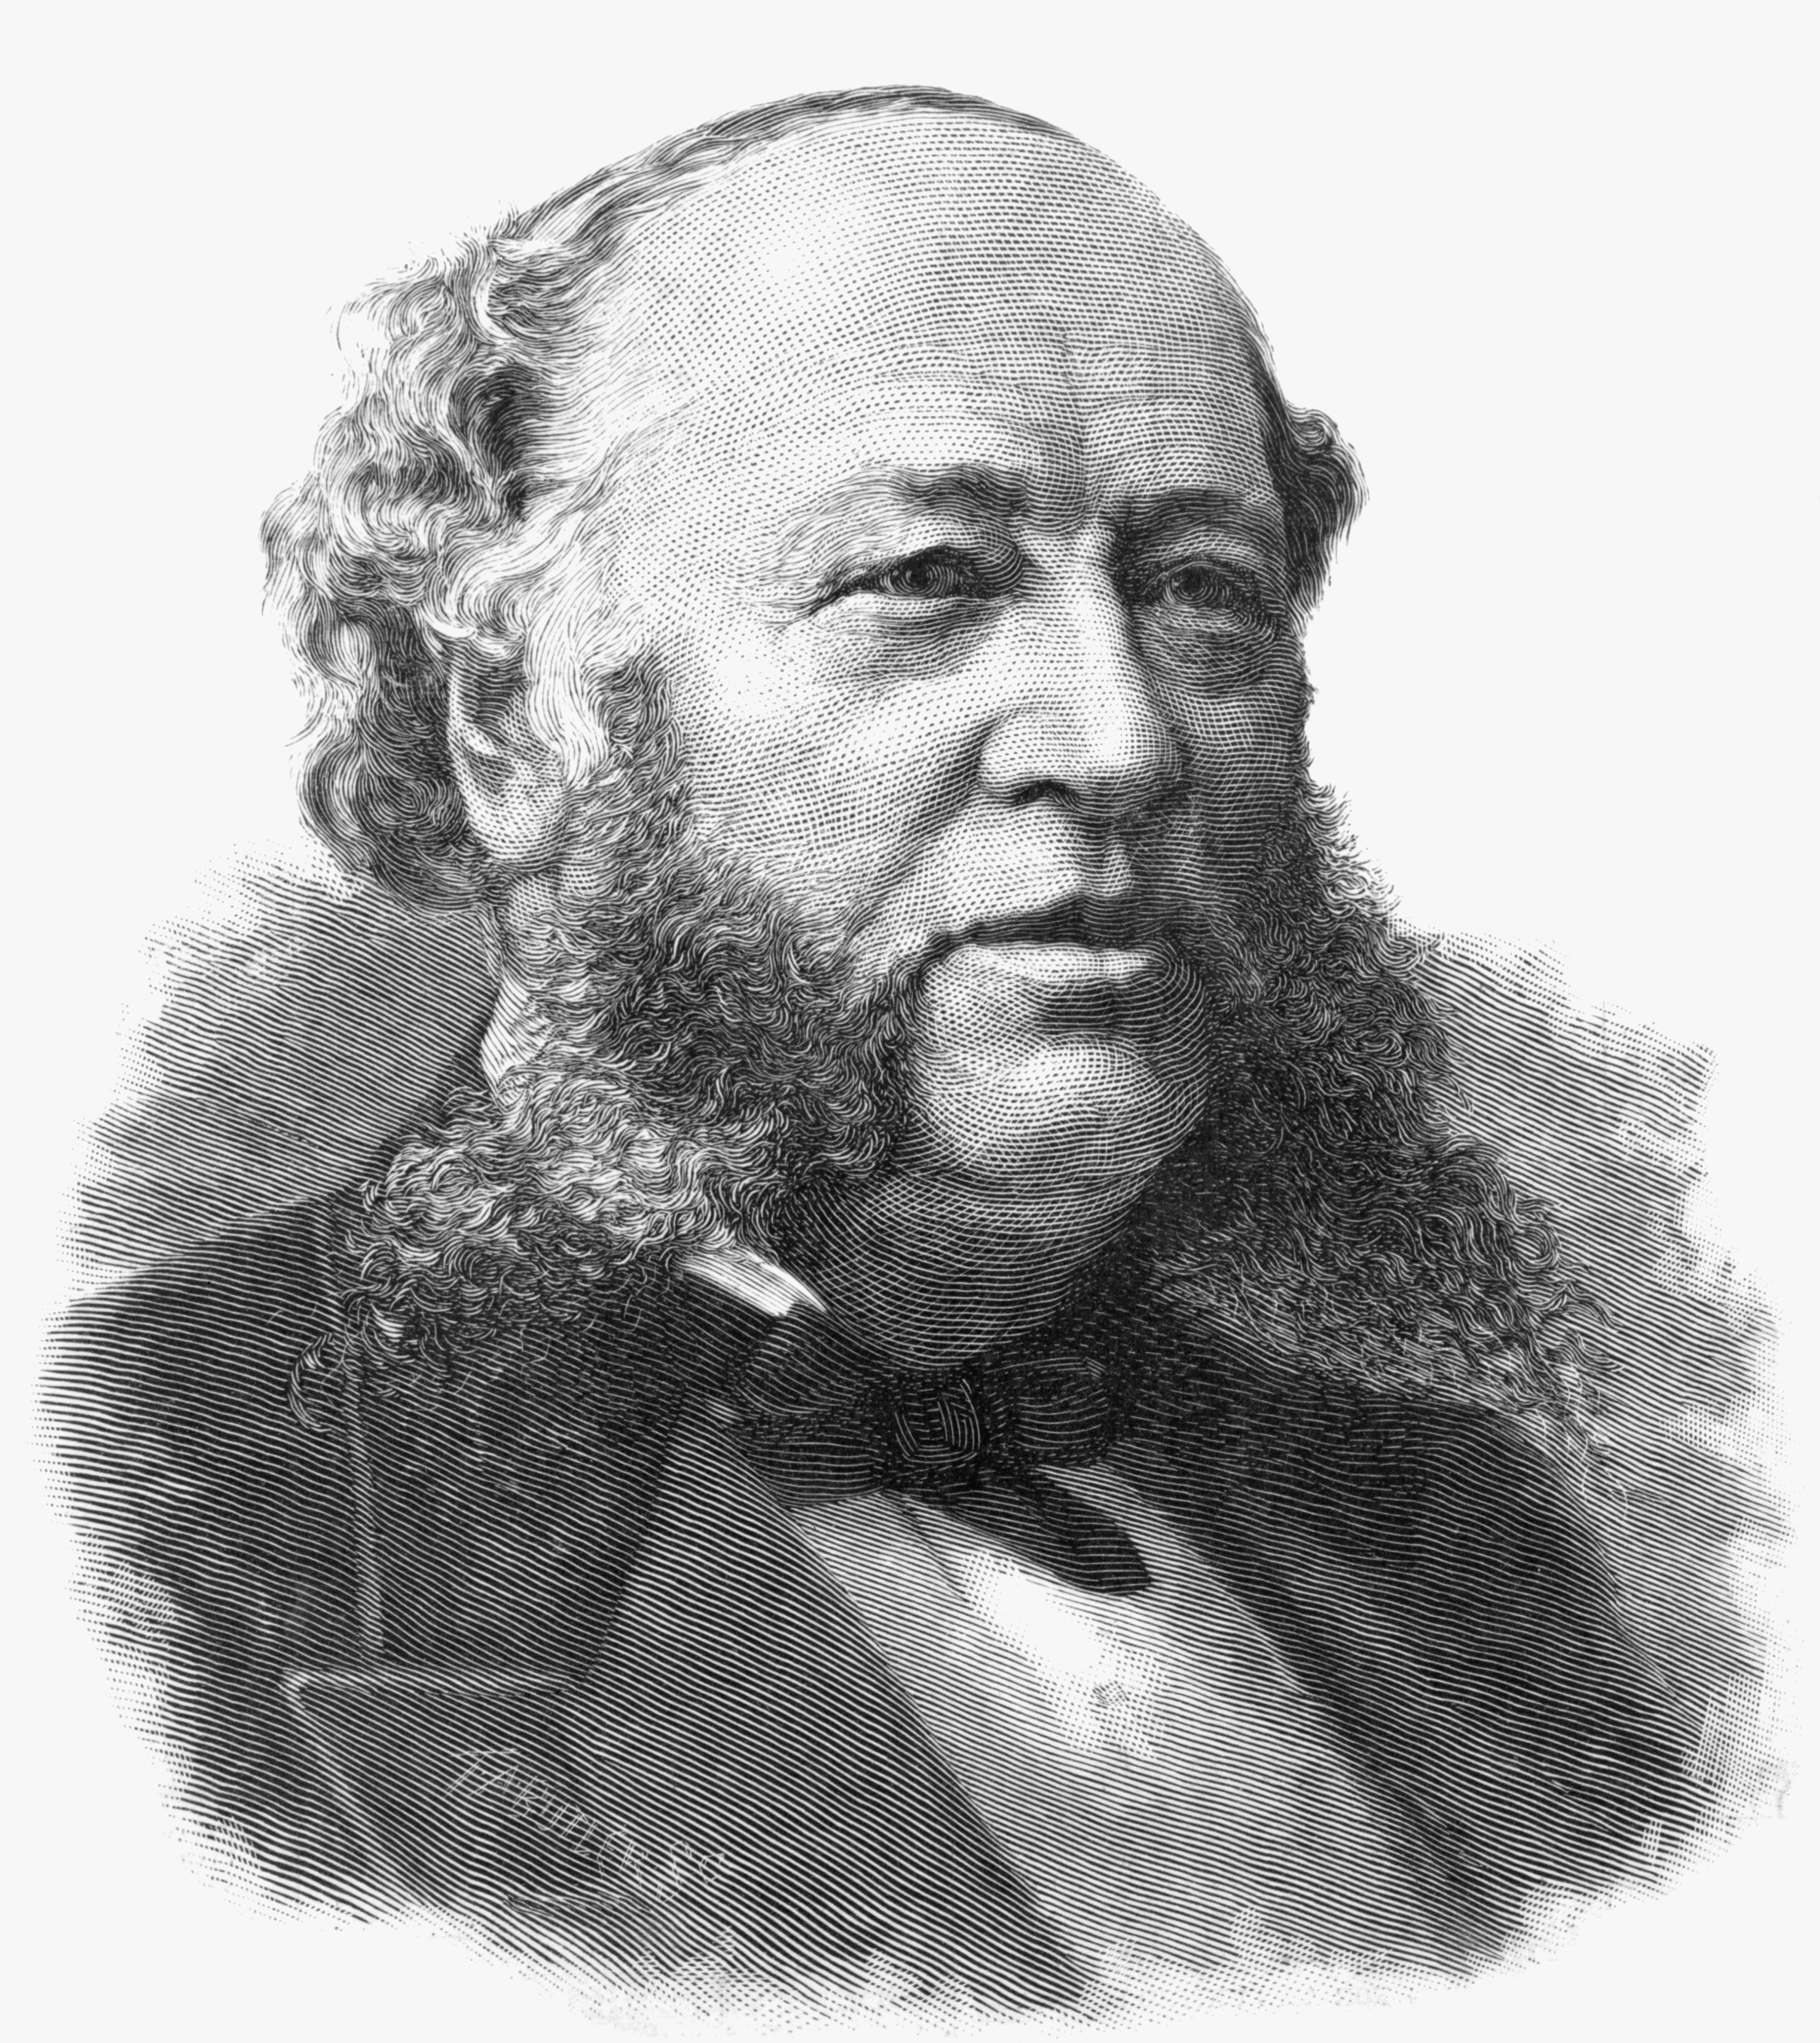 William Henry Vanderbilt I (1821-1885). Illustration originally published in Harper's weekly, v. 29, no. 1513 (1885 December 19), p. 845. Library of Congress, Prints and Photographs Division.